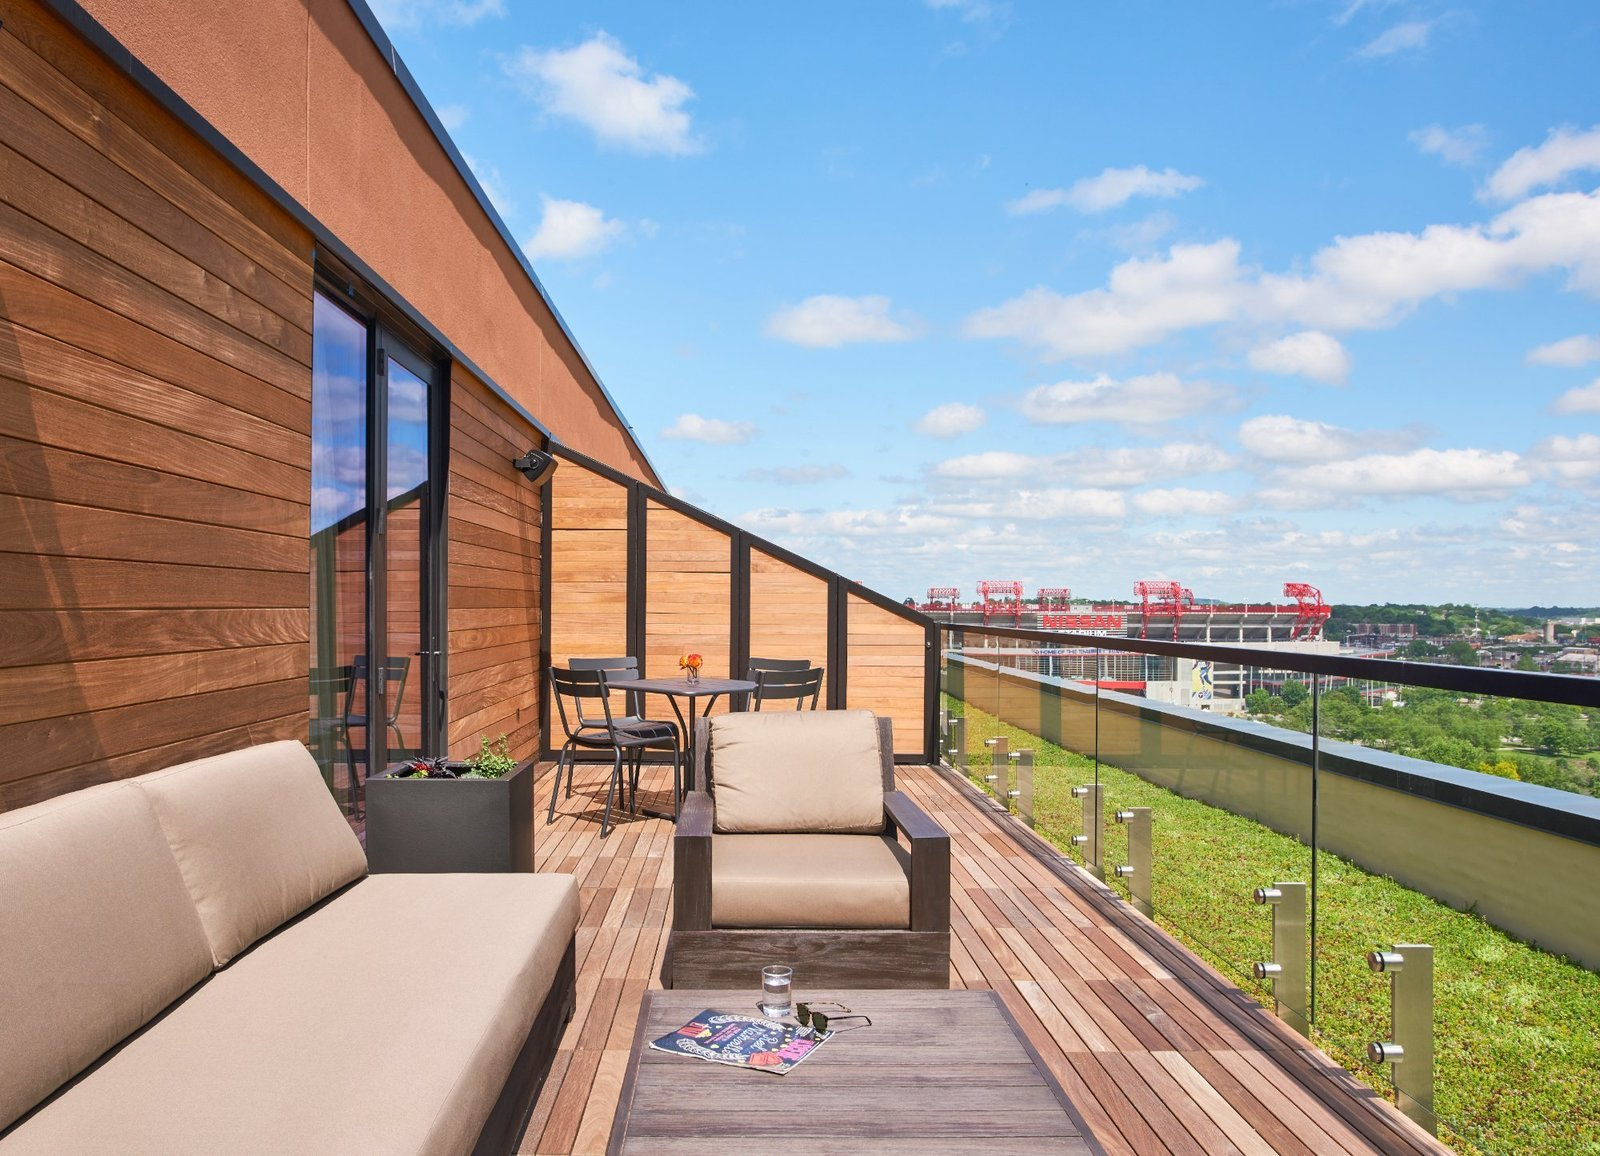 Outdoor, Wood Patio, Porch, Deck, and Rooftop  21c Museum Hotel Nashville